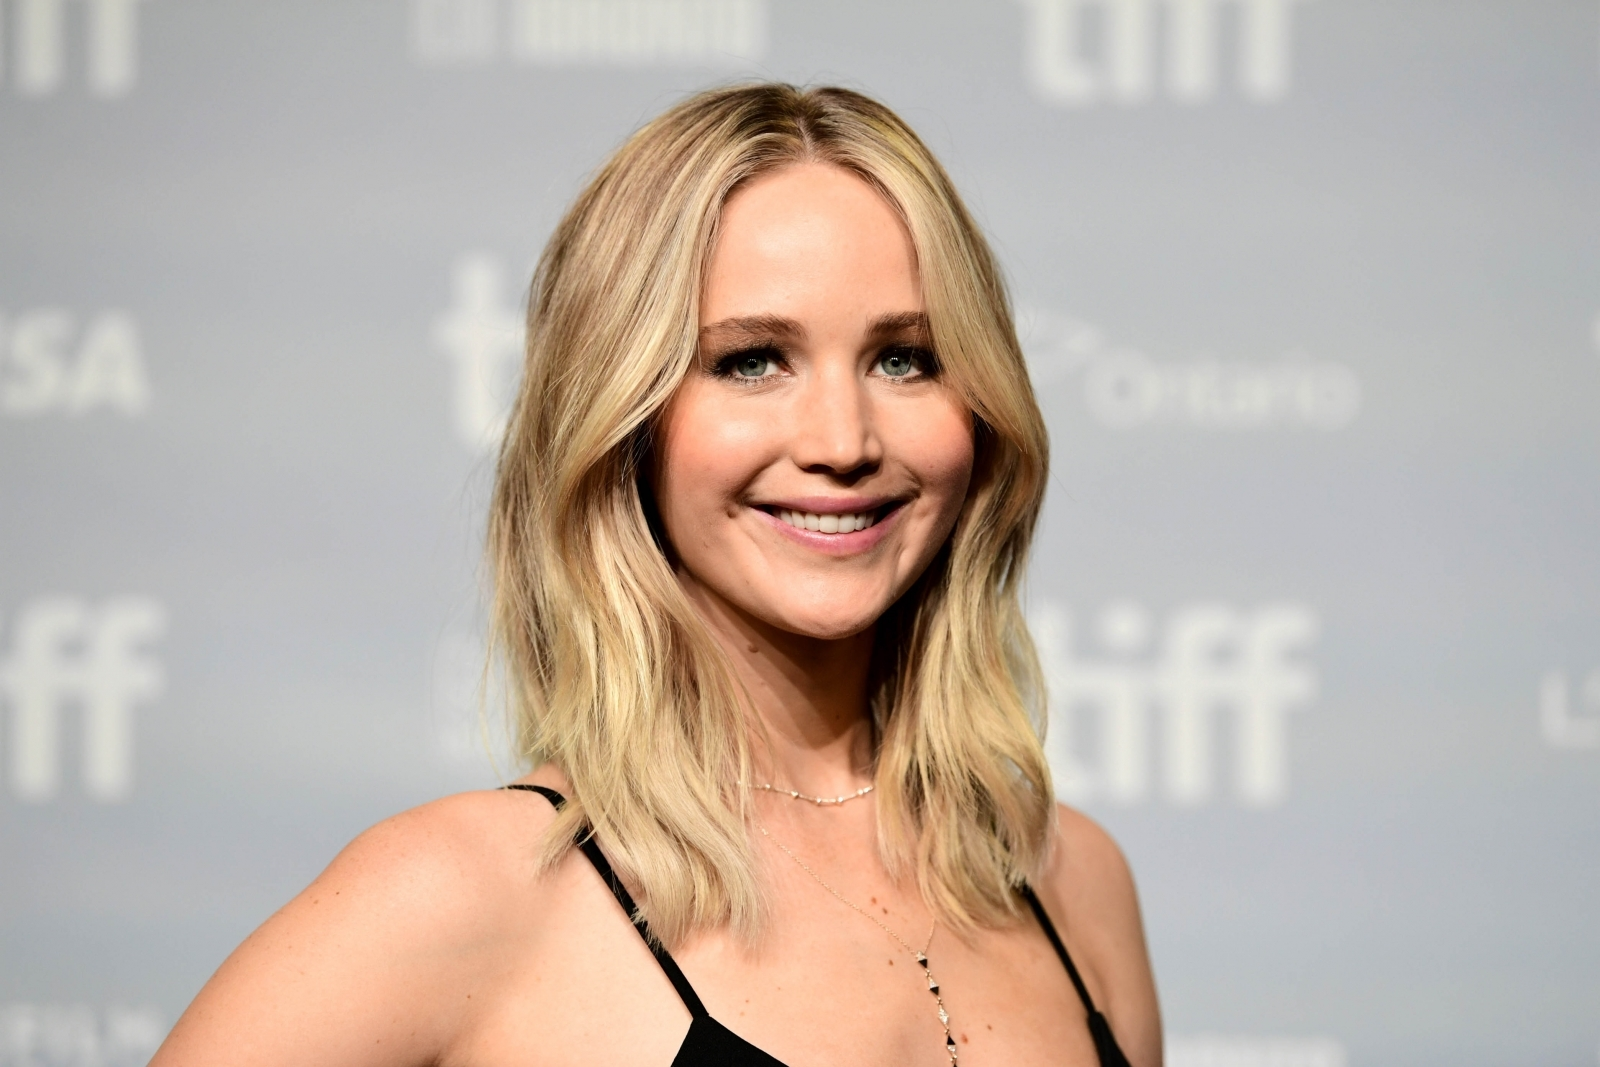 Jennifer Lawrence discusses role in new film 'Mother!'